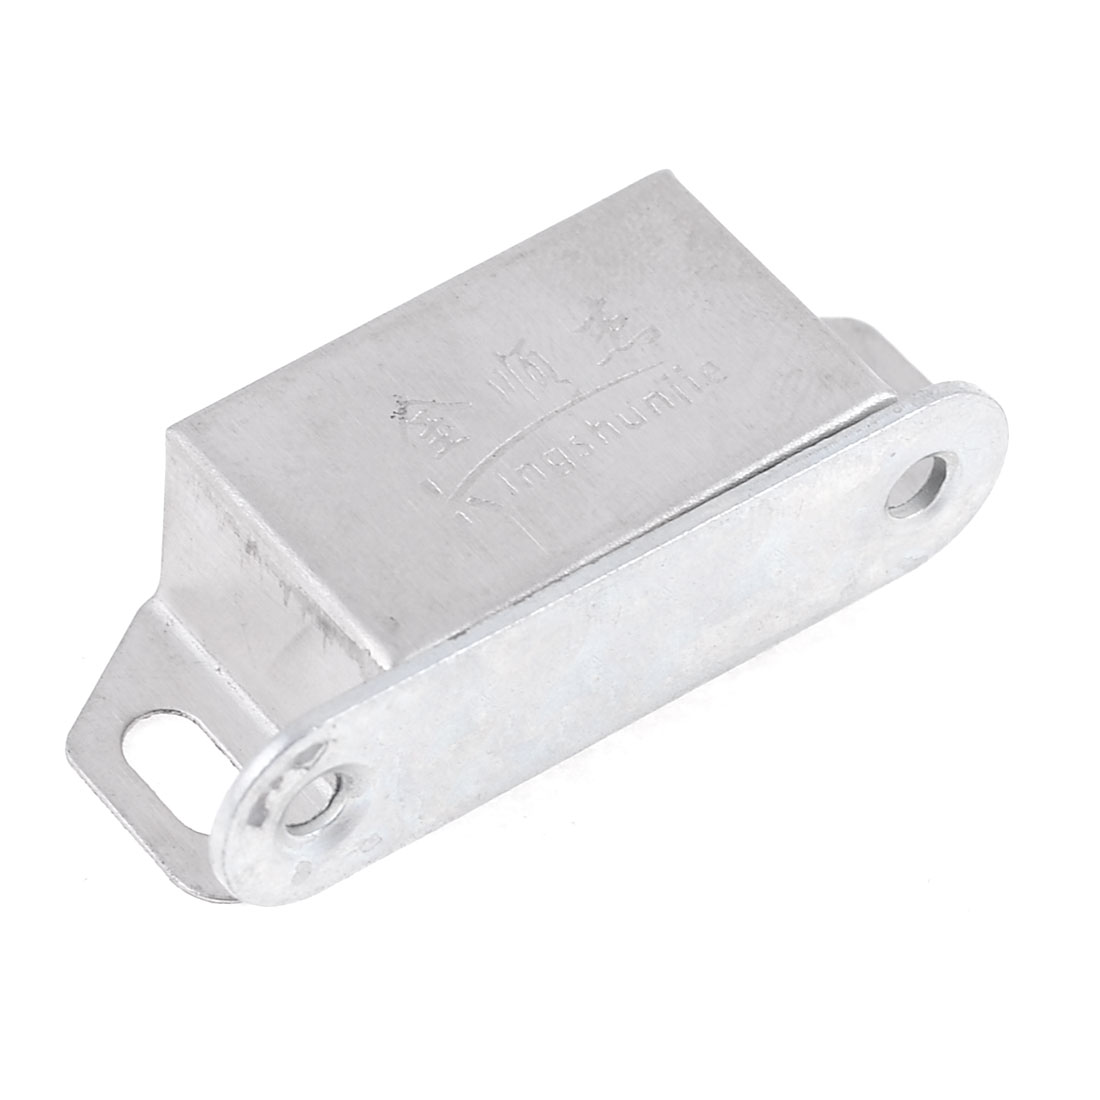 "Cabinet Spare Part Metal Plate 1.8"" Long Magnetic Catch Silver Tone"